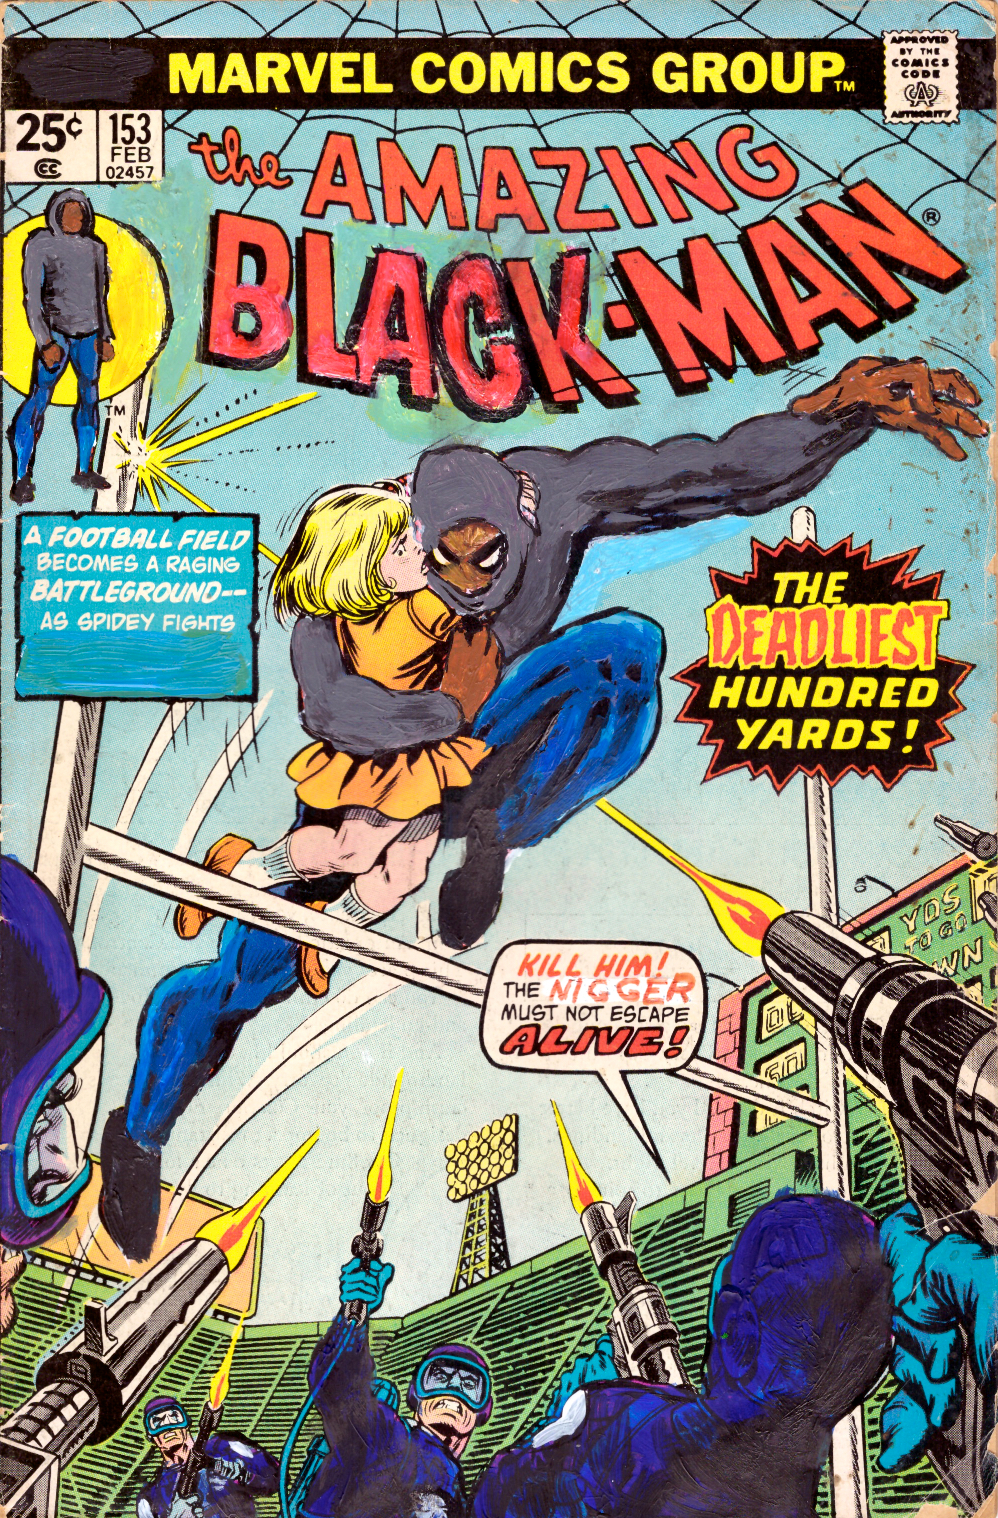 KB-004, Kumasi J. Barnett, The Amazing Black-Man #153, The Deadliest Hundred Yards, 2018, Acrylic, marker, pen and oil marker on comic book, 9 3:4h x 6 1:4w inches.jpg